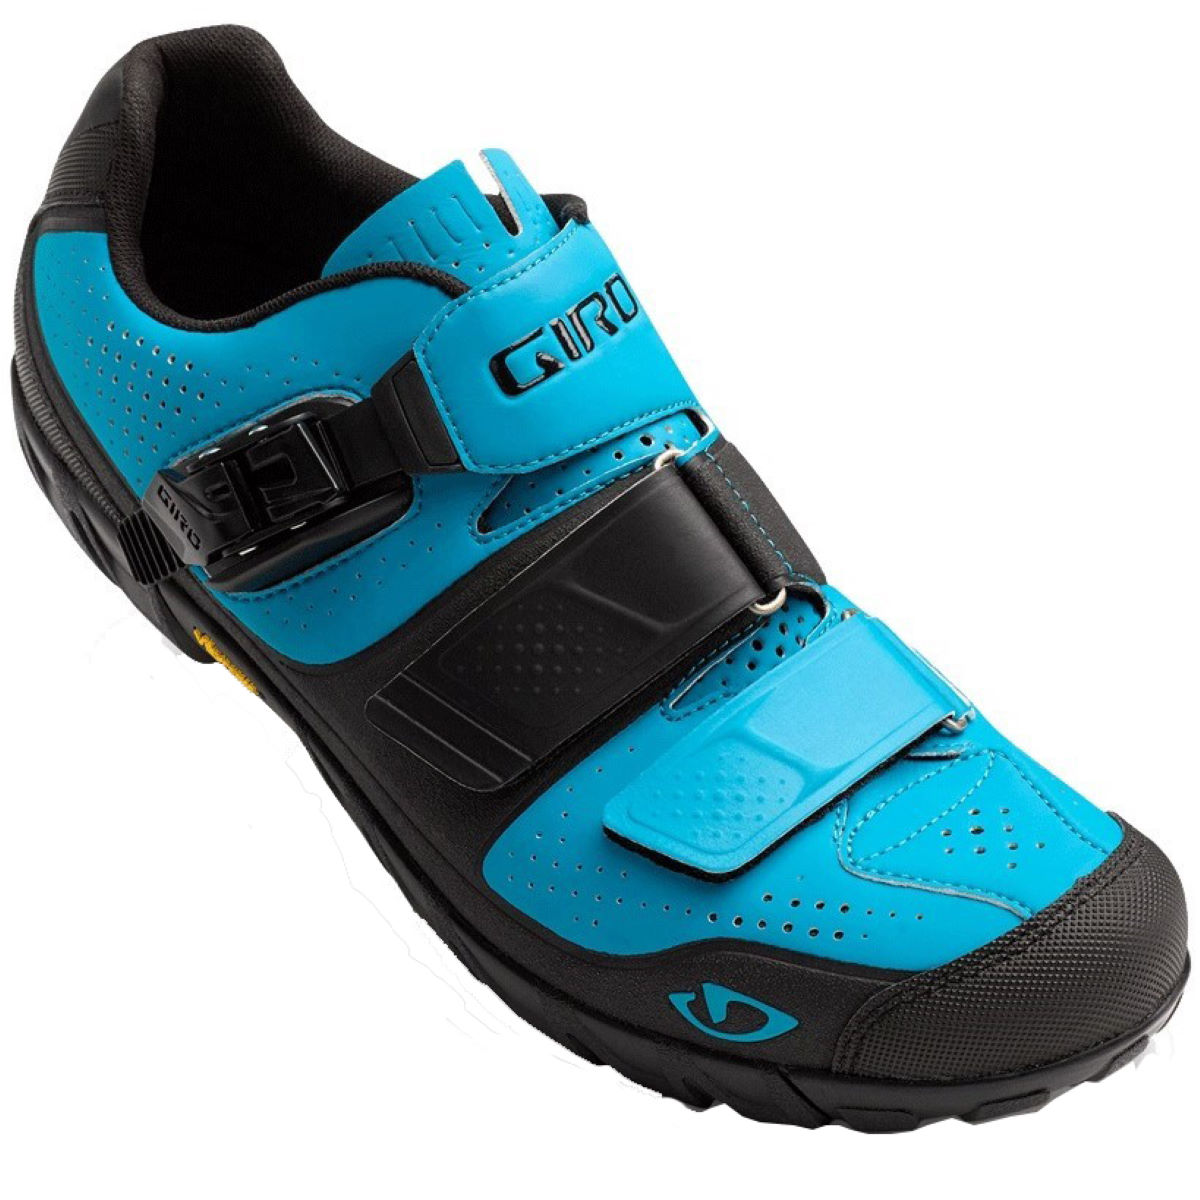 Chaussures VTT Giro Terraduro - 40 Blue Jewel/Black